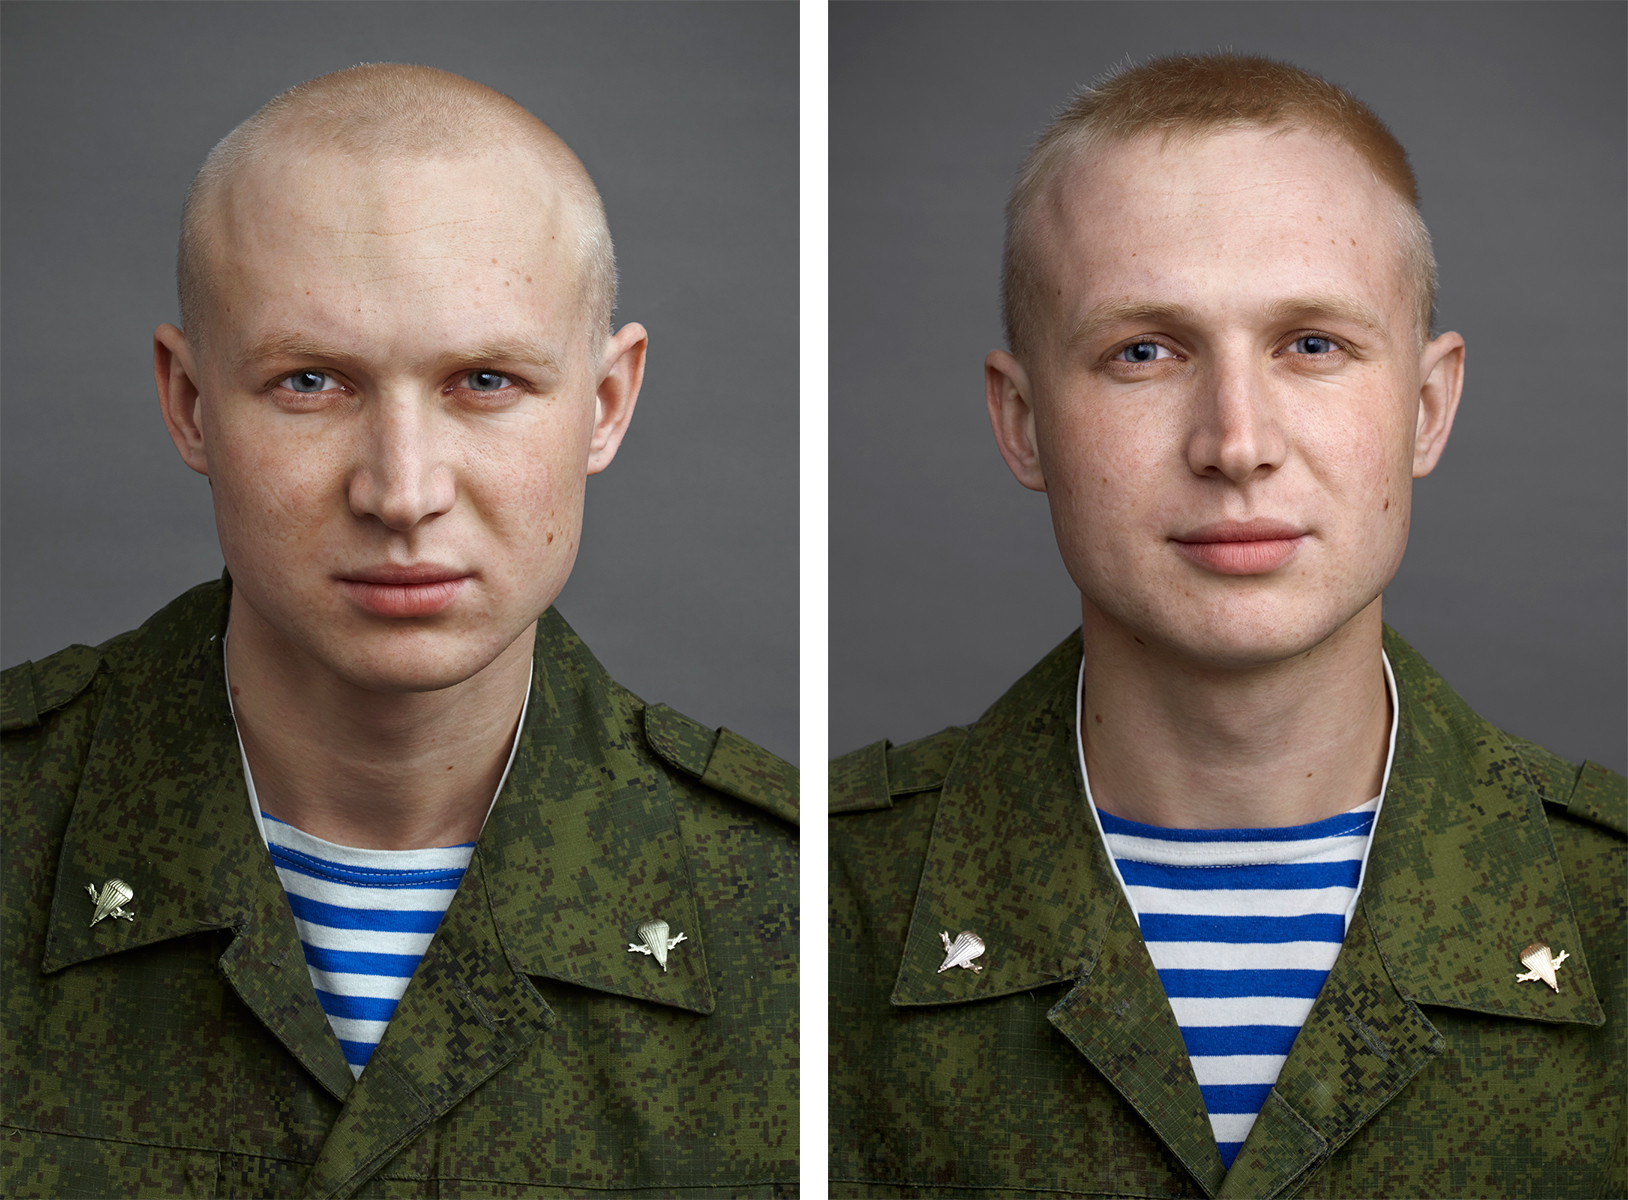 Russian army changes soldiers